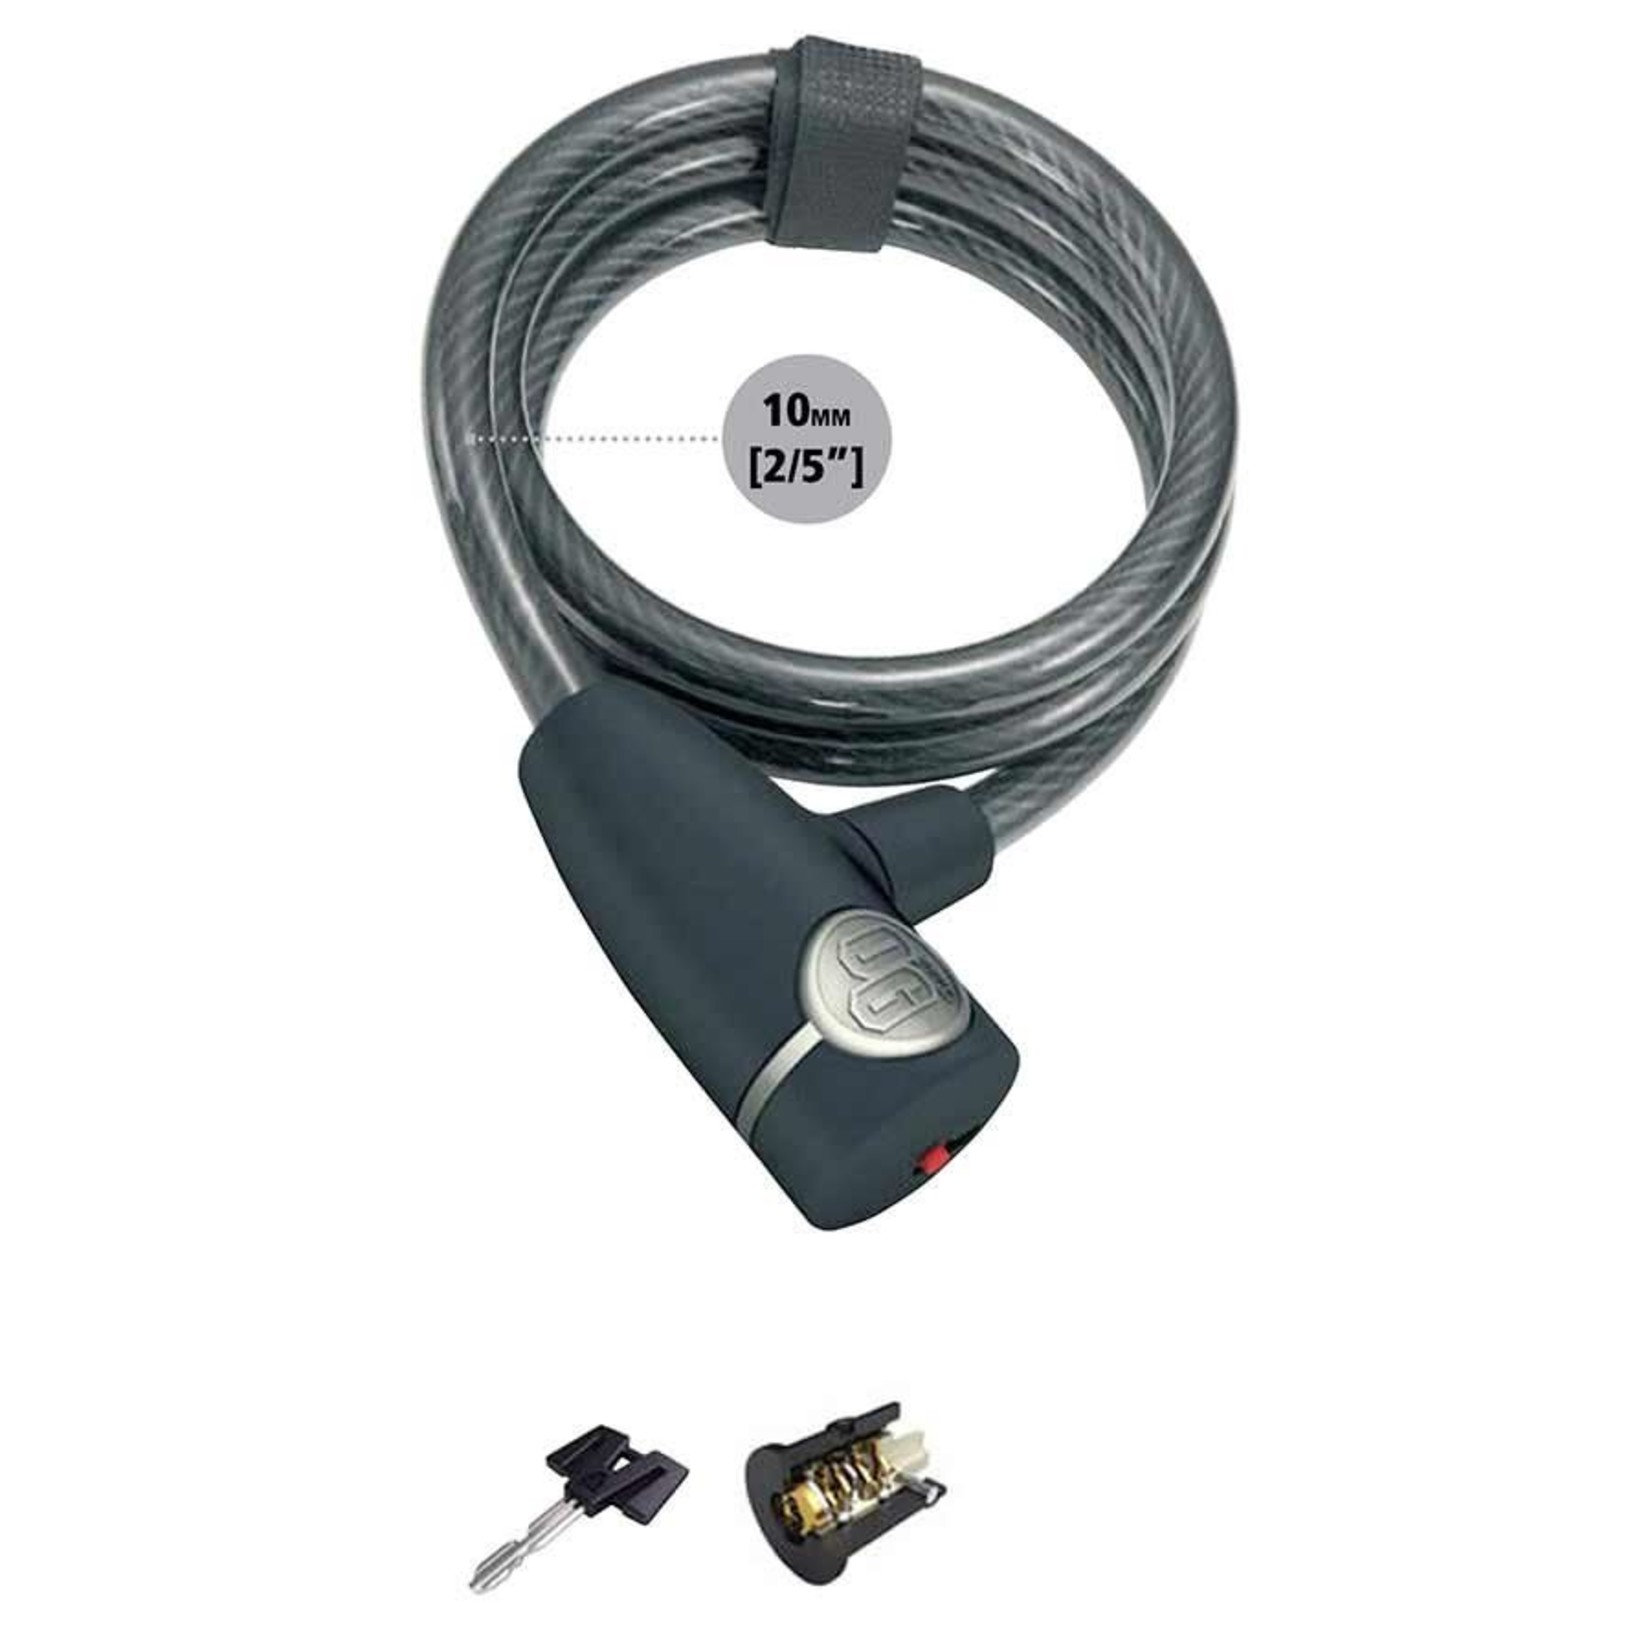 Onguard OnGuard, OG, Coil cable with key lock, 10mm x 120cm (10mm x 4')